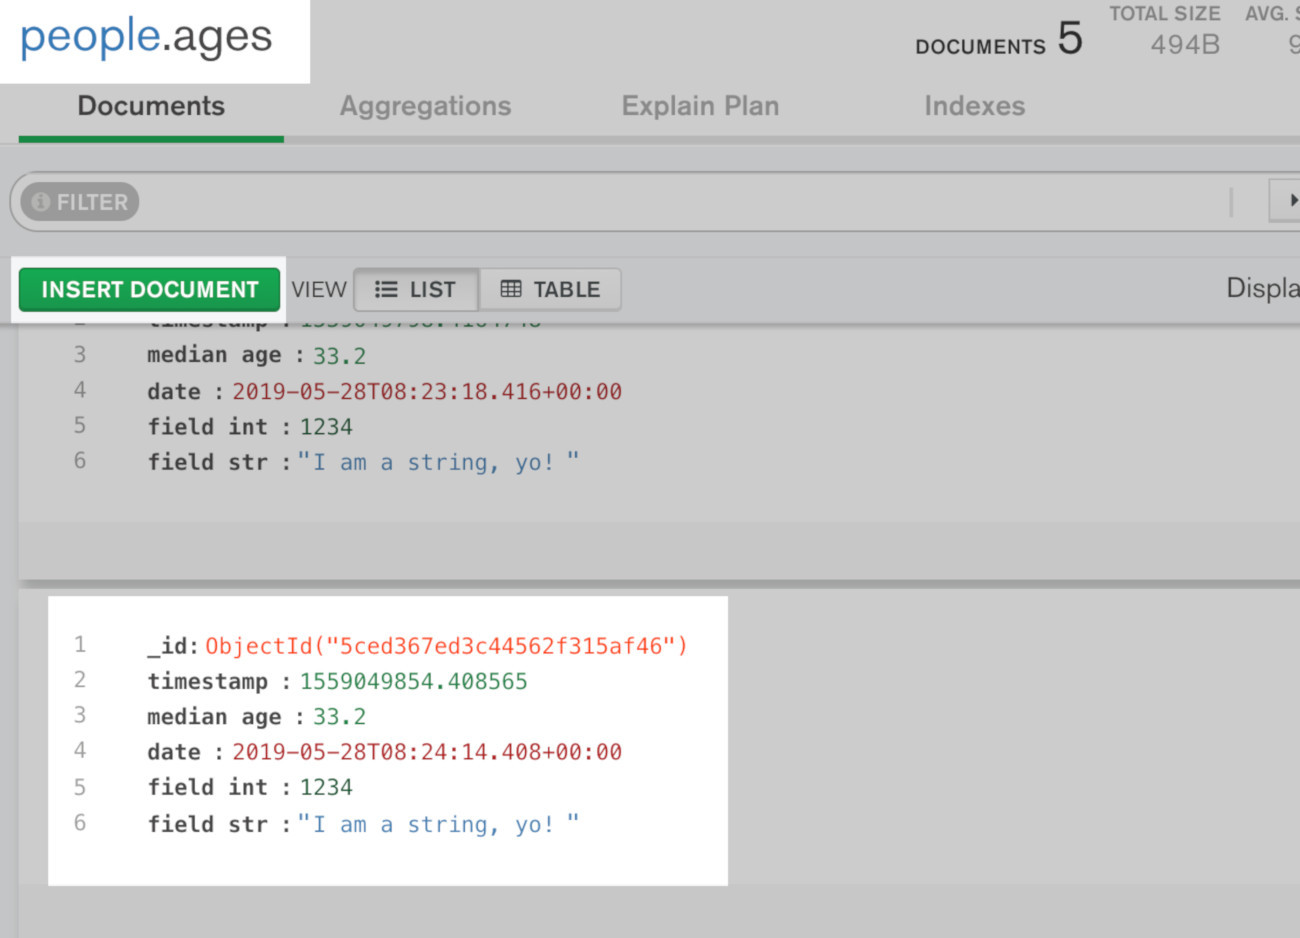 Screenshot of MongoDB Compass application getting a document after it was inserted using PyMongo in Python